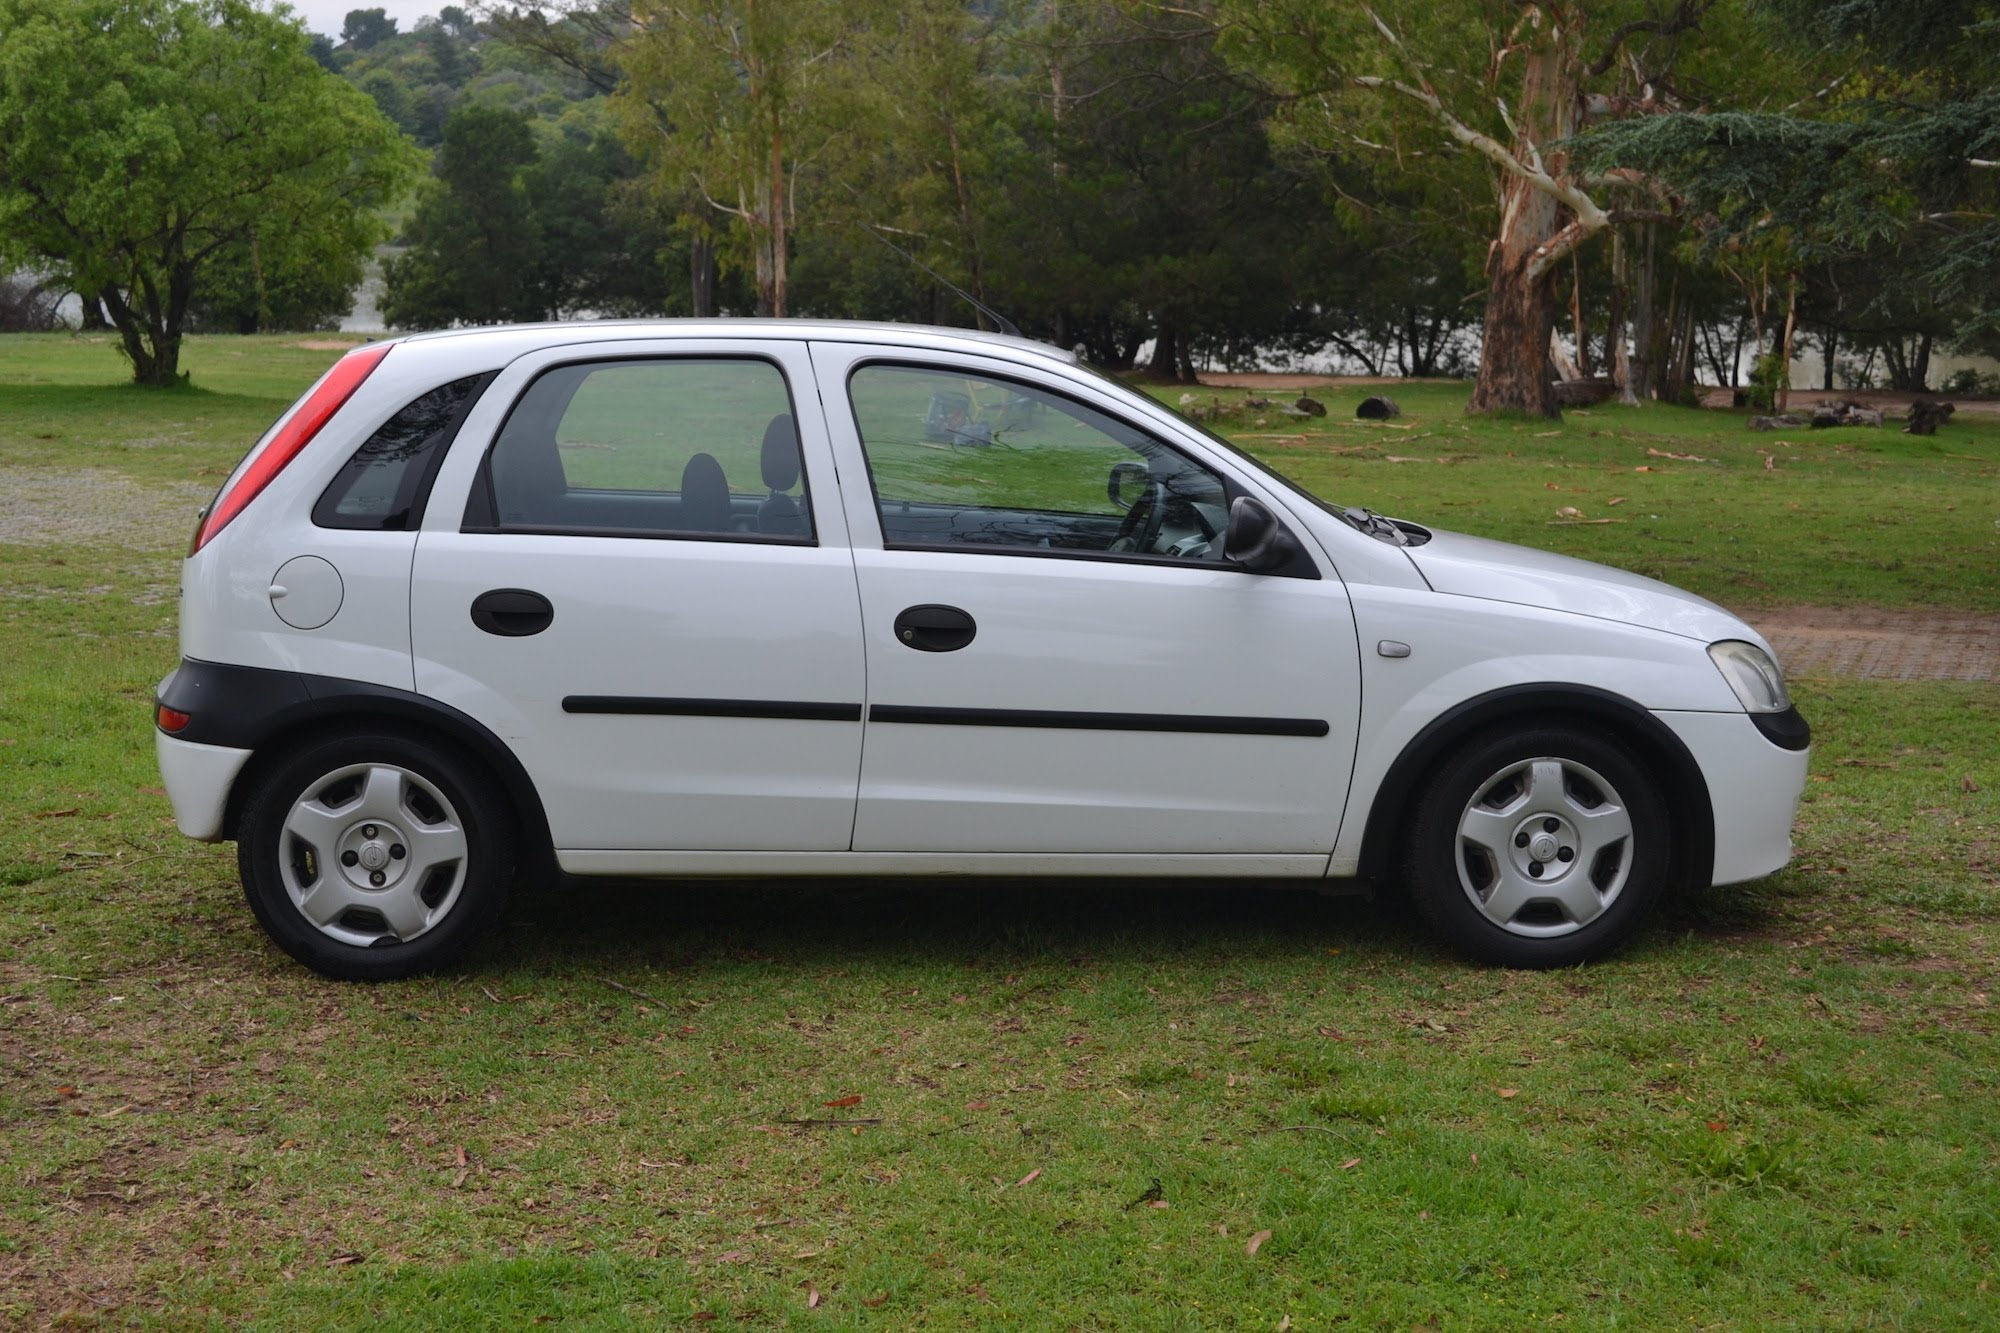 Opel Corsa 1.0 2005 - Technical specifications